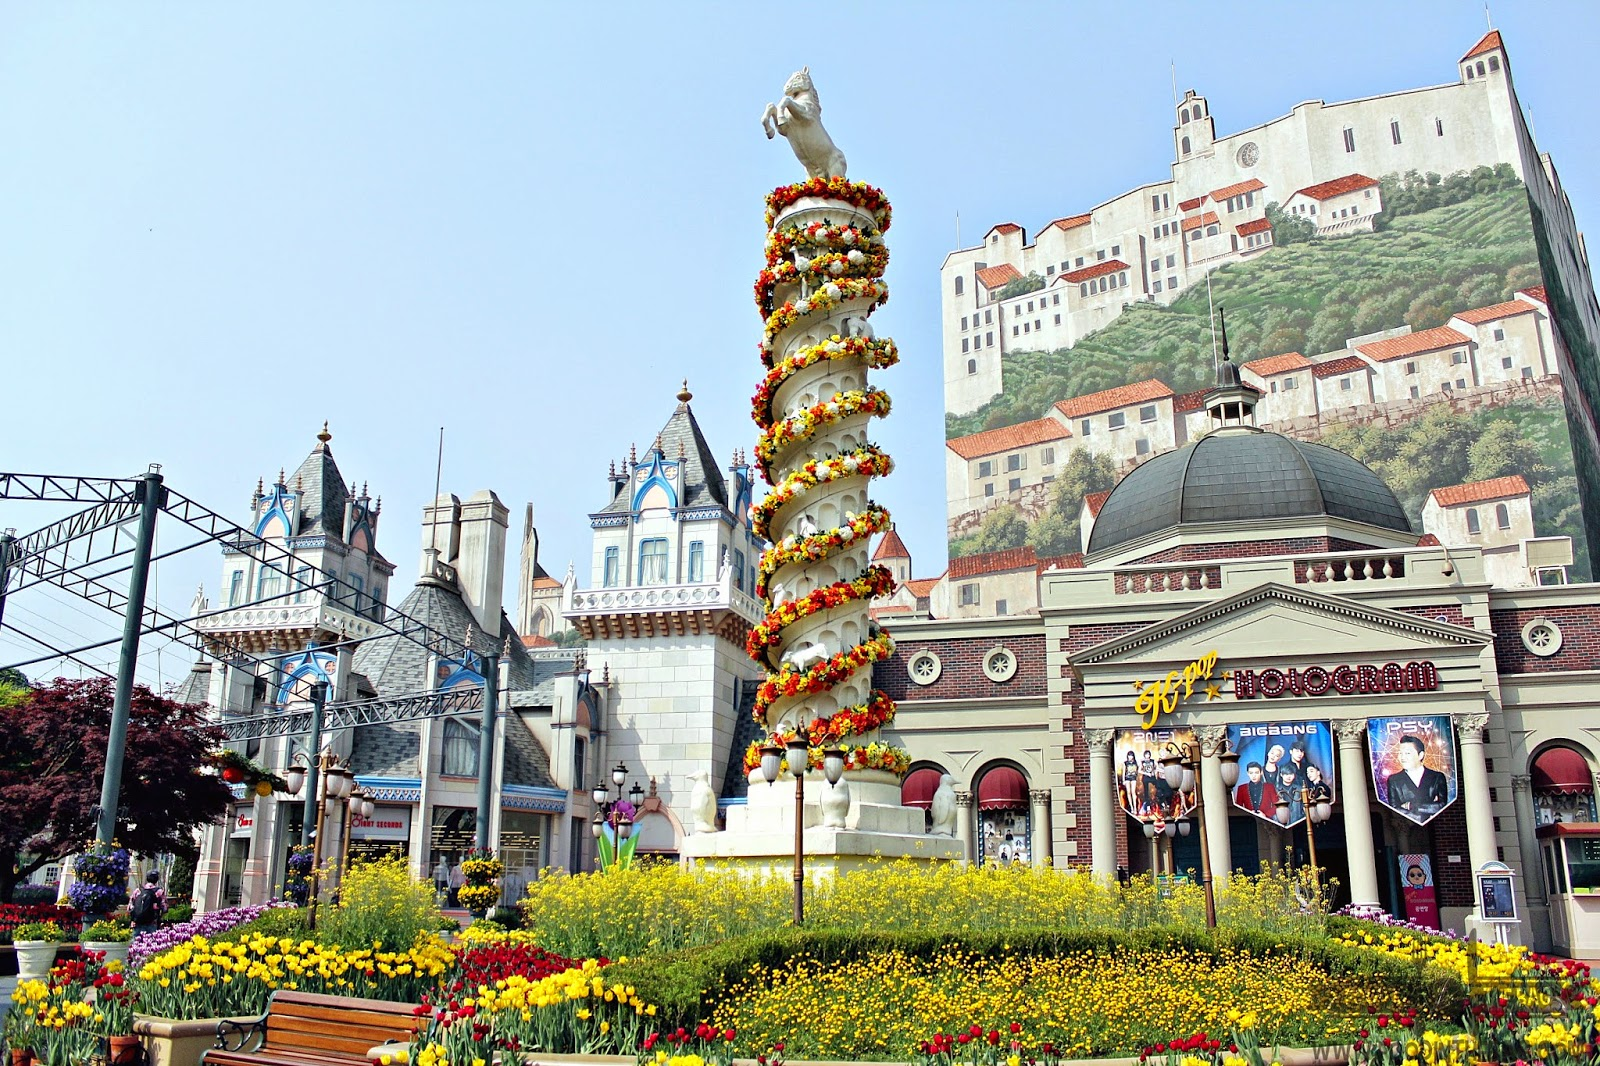 EVERLAND THEME PARK in KOREA: Photo Essay | Food In The Bag